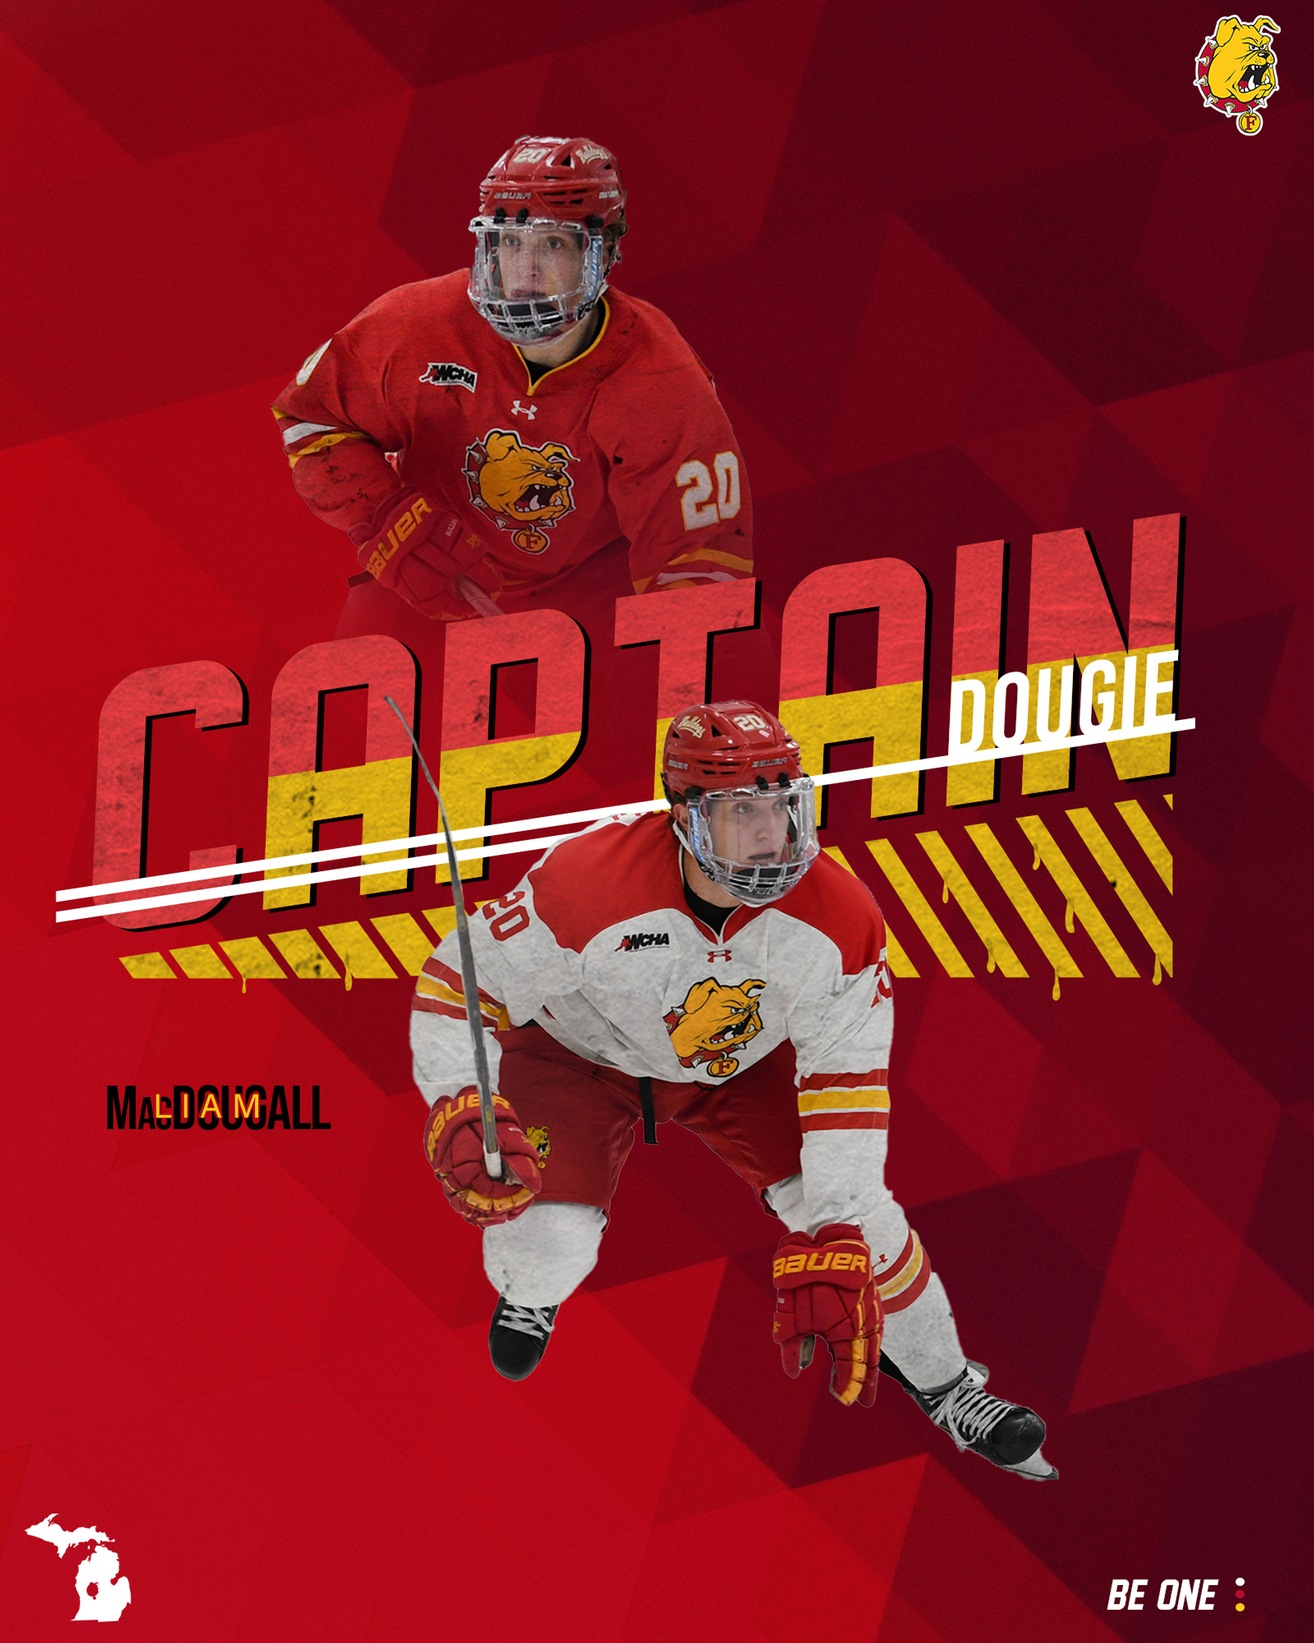 MacDougall Named Captain Of Ferris State Hockey Team